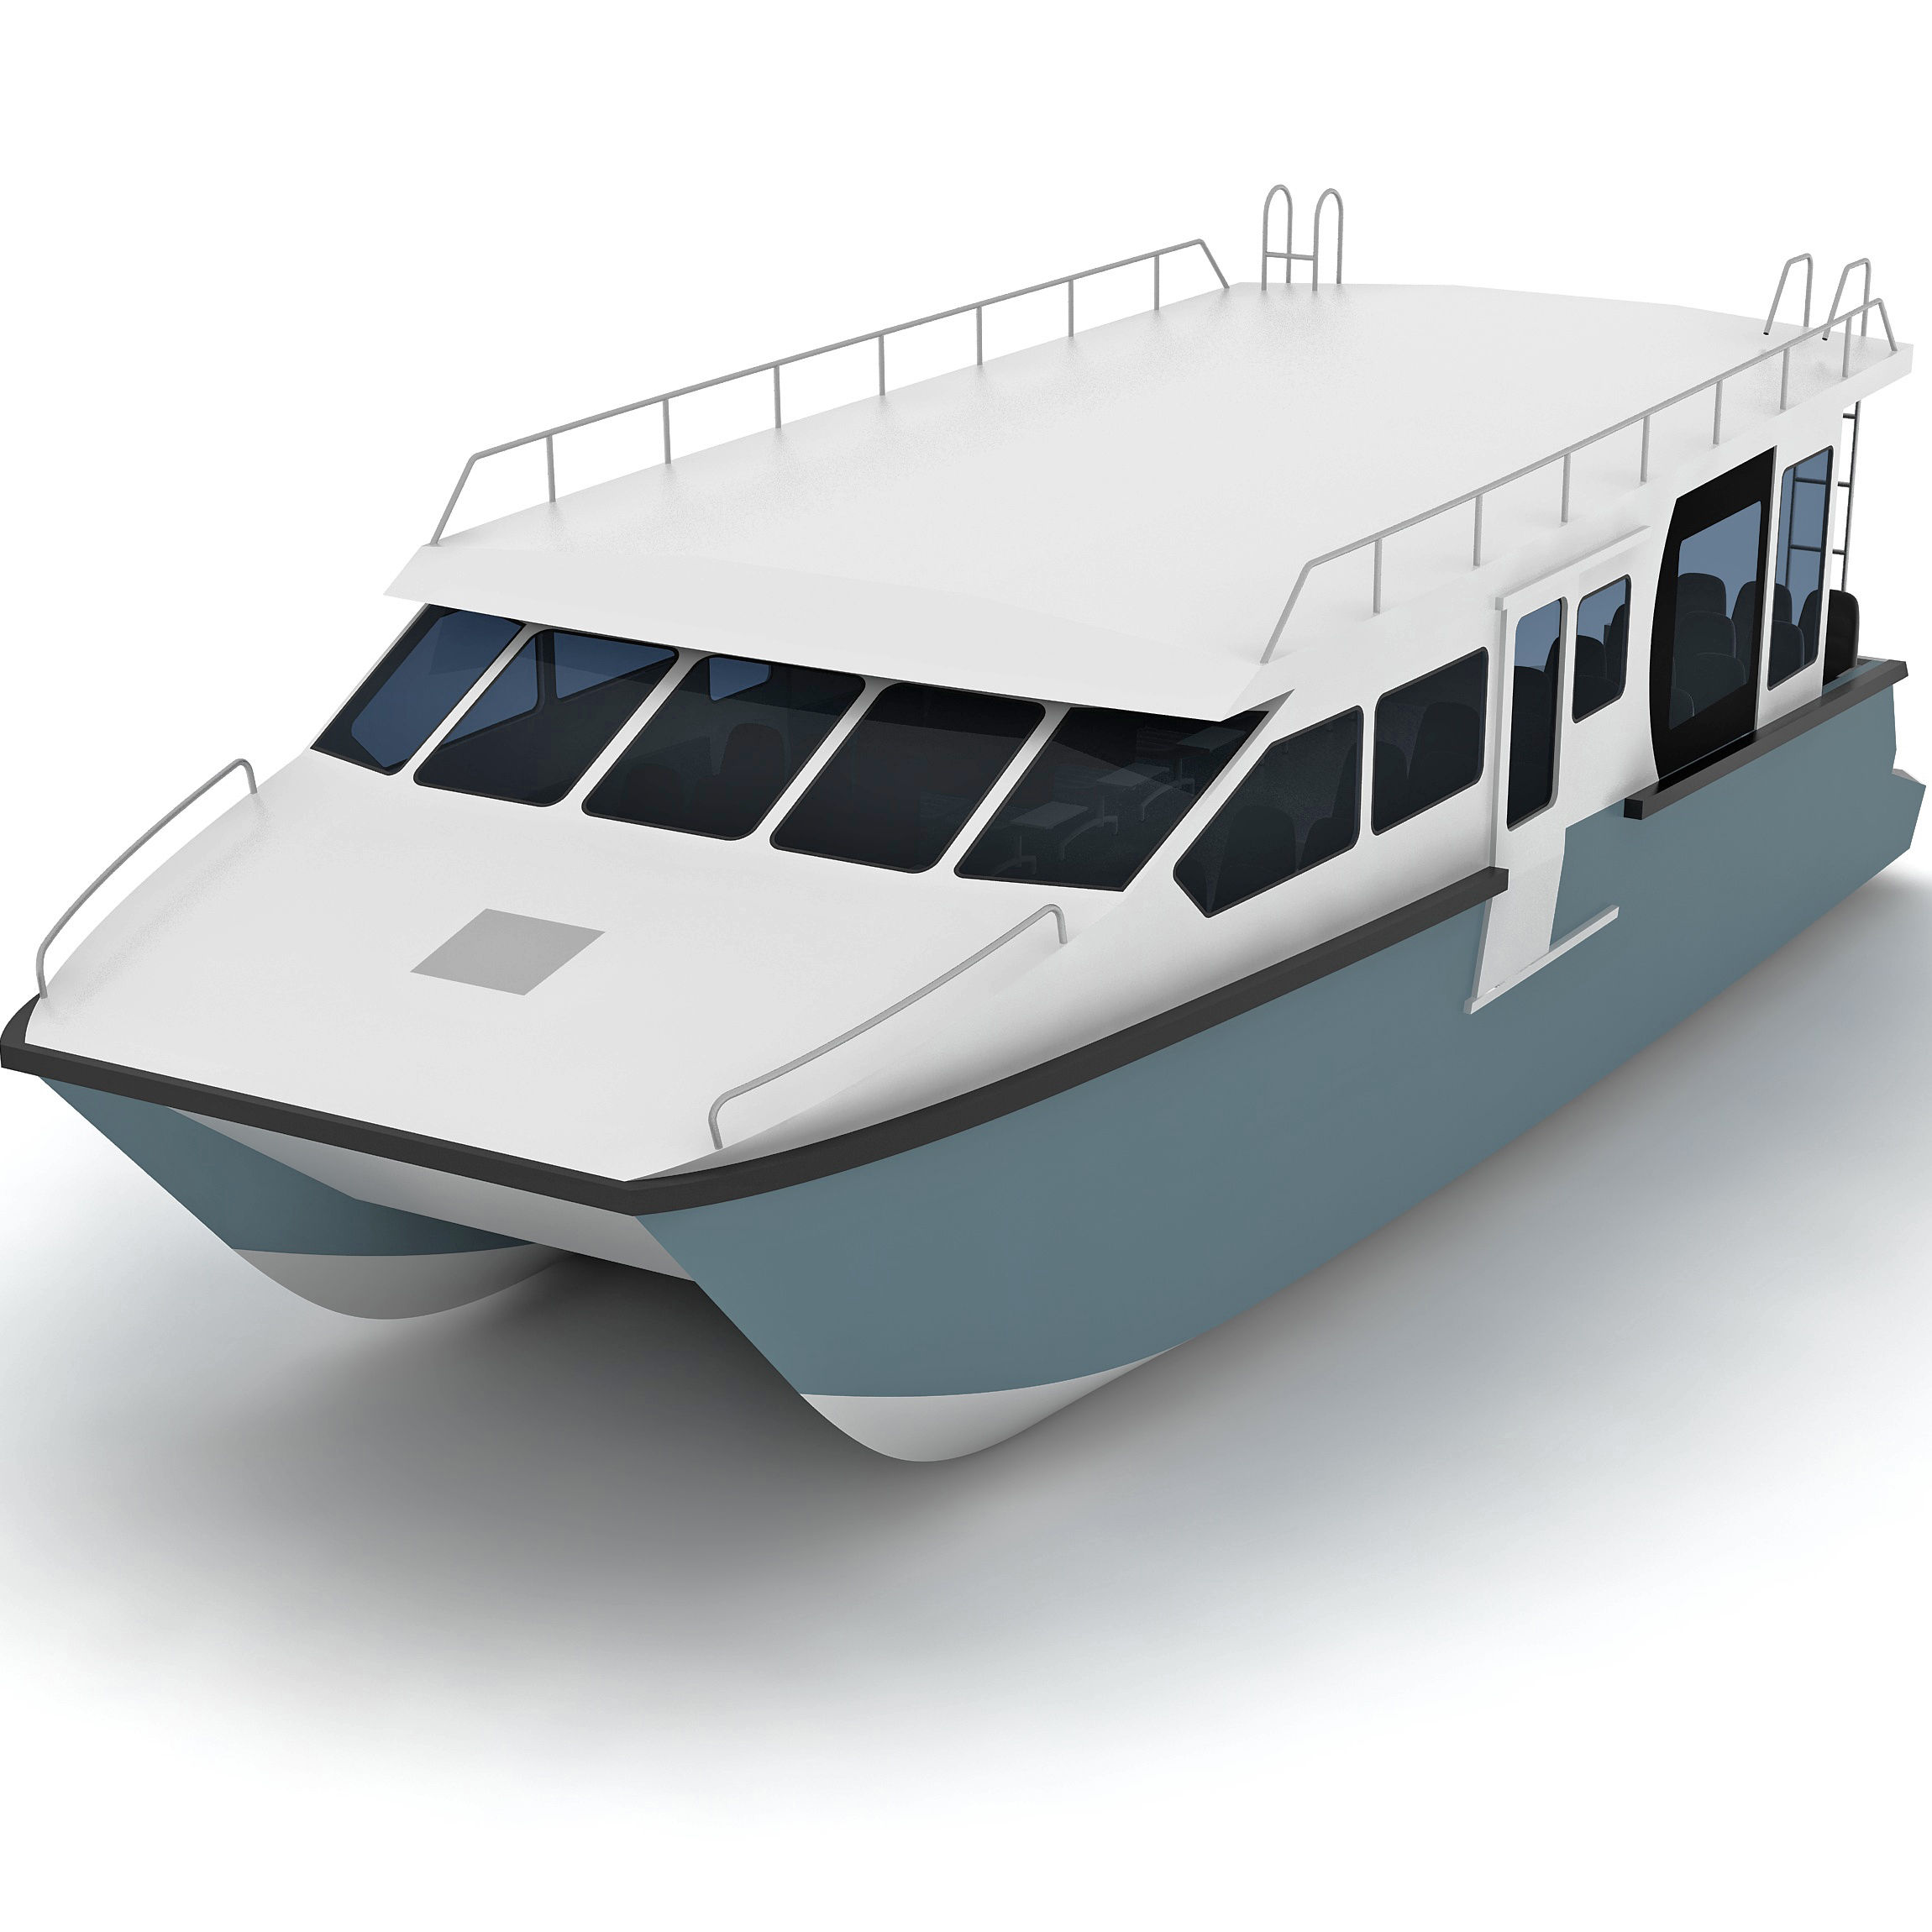 13m 50 seats Aluminum catamaran passenger boat ferry boat for sale